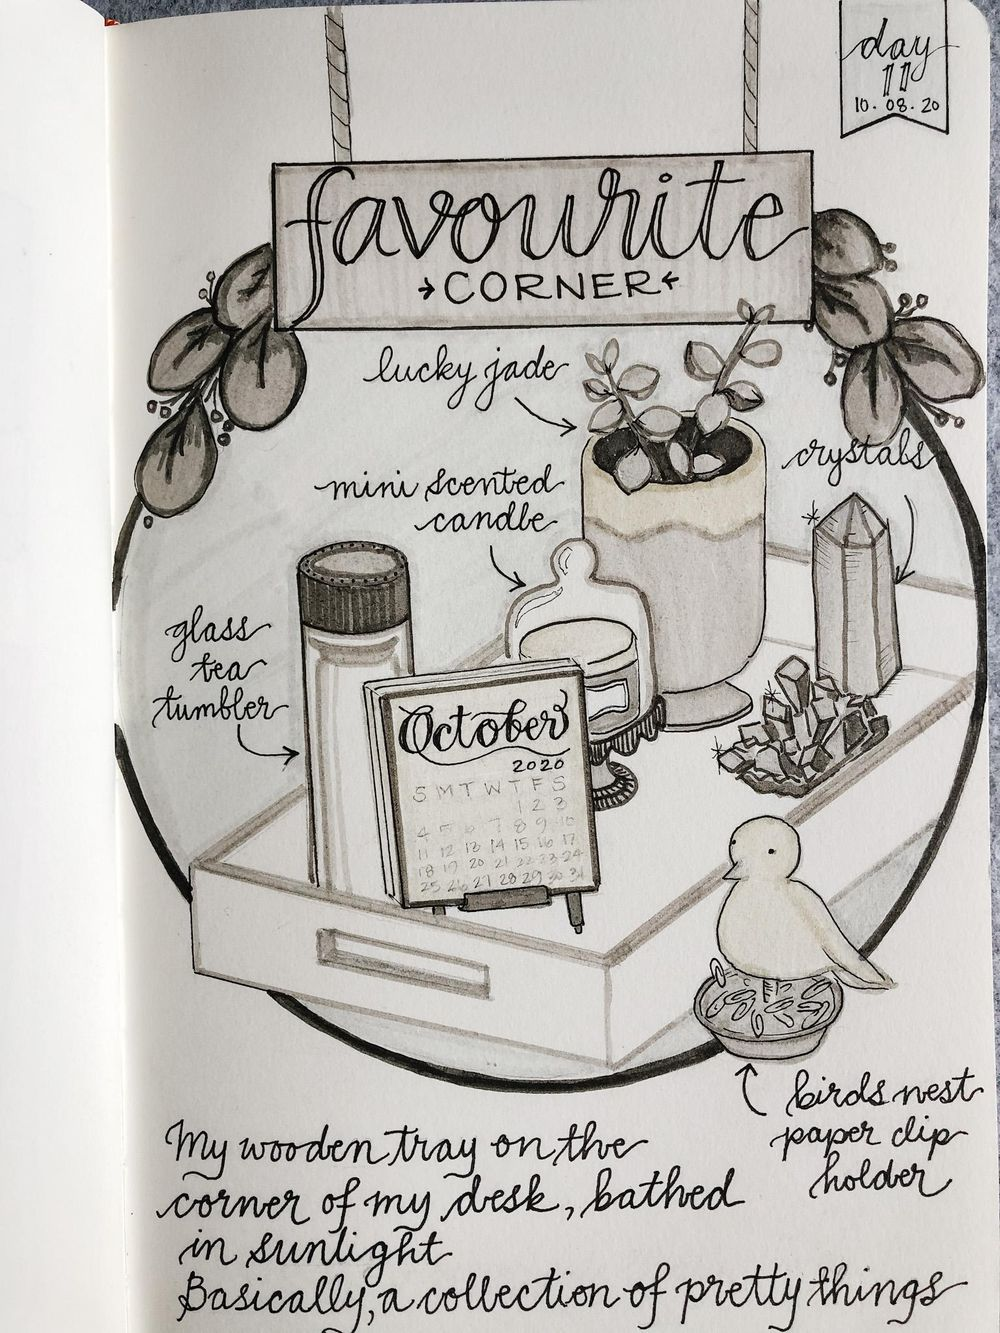 Illustrated Journalling 28 day challenge- PT 1 - image 4 - student project